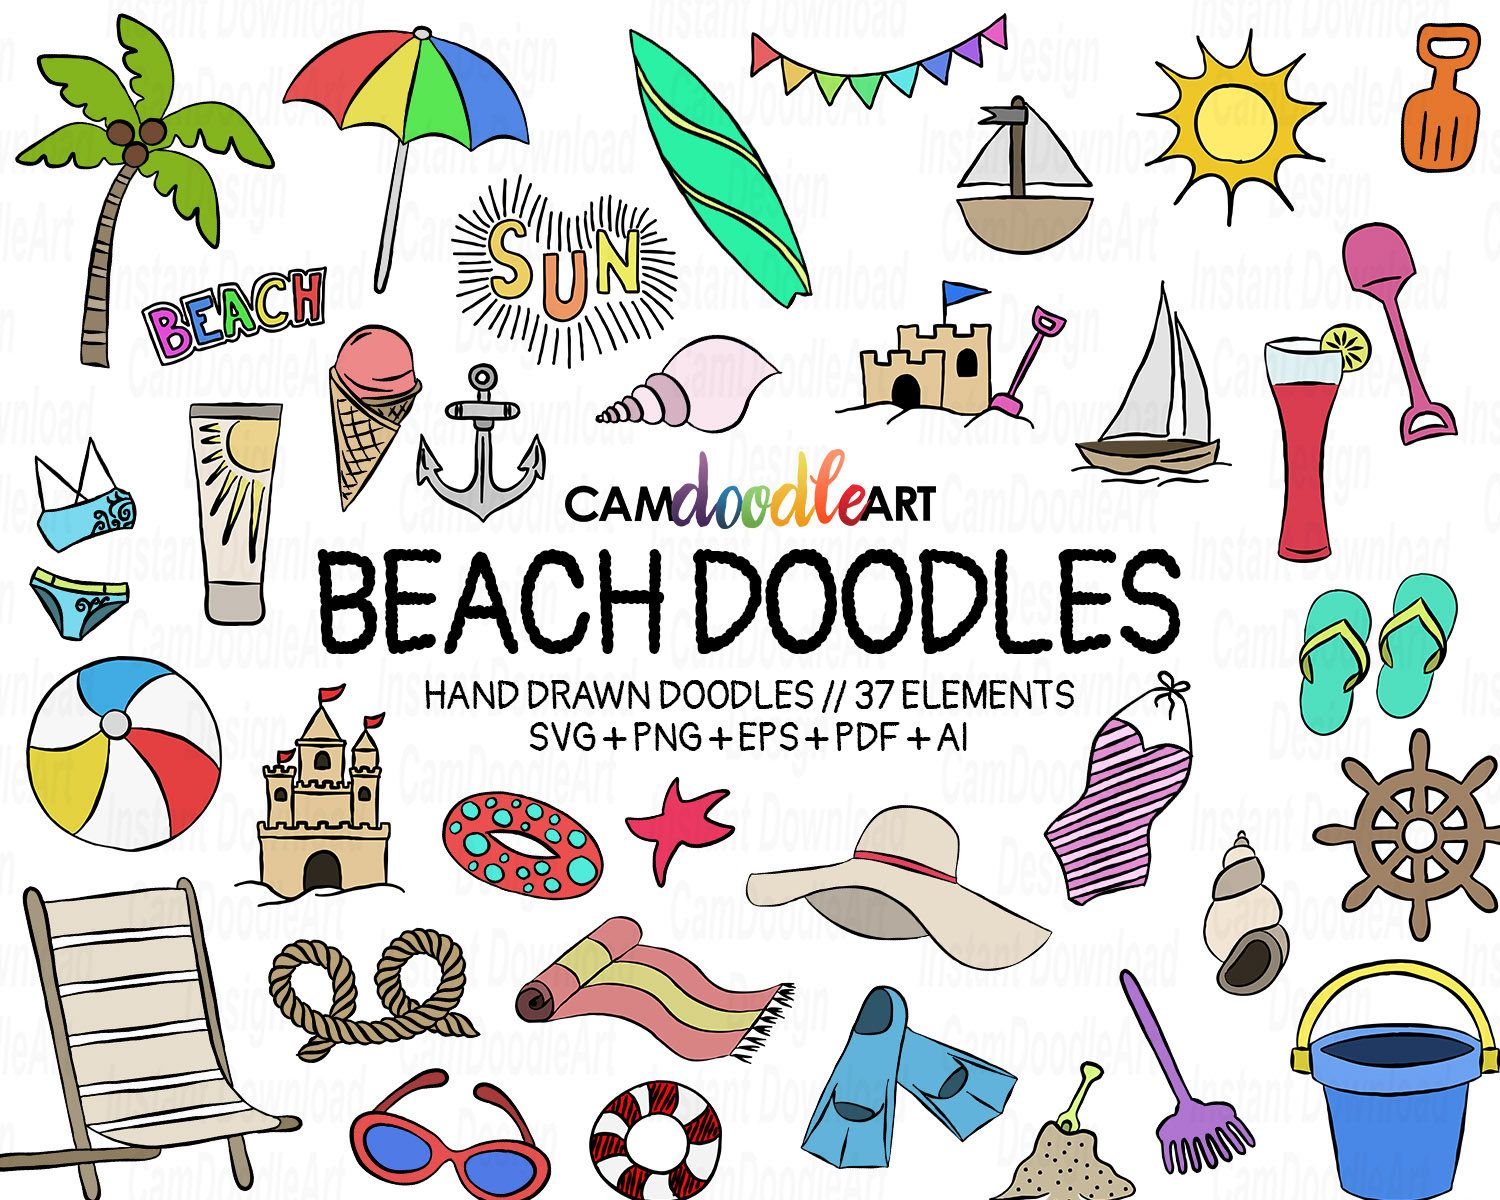 37 Beach Doodles Vector Pack Hand Drawn Doodle Clipart Beach Etsy How To Draw Hands Doodles Travel Doodles